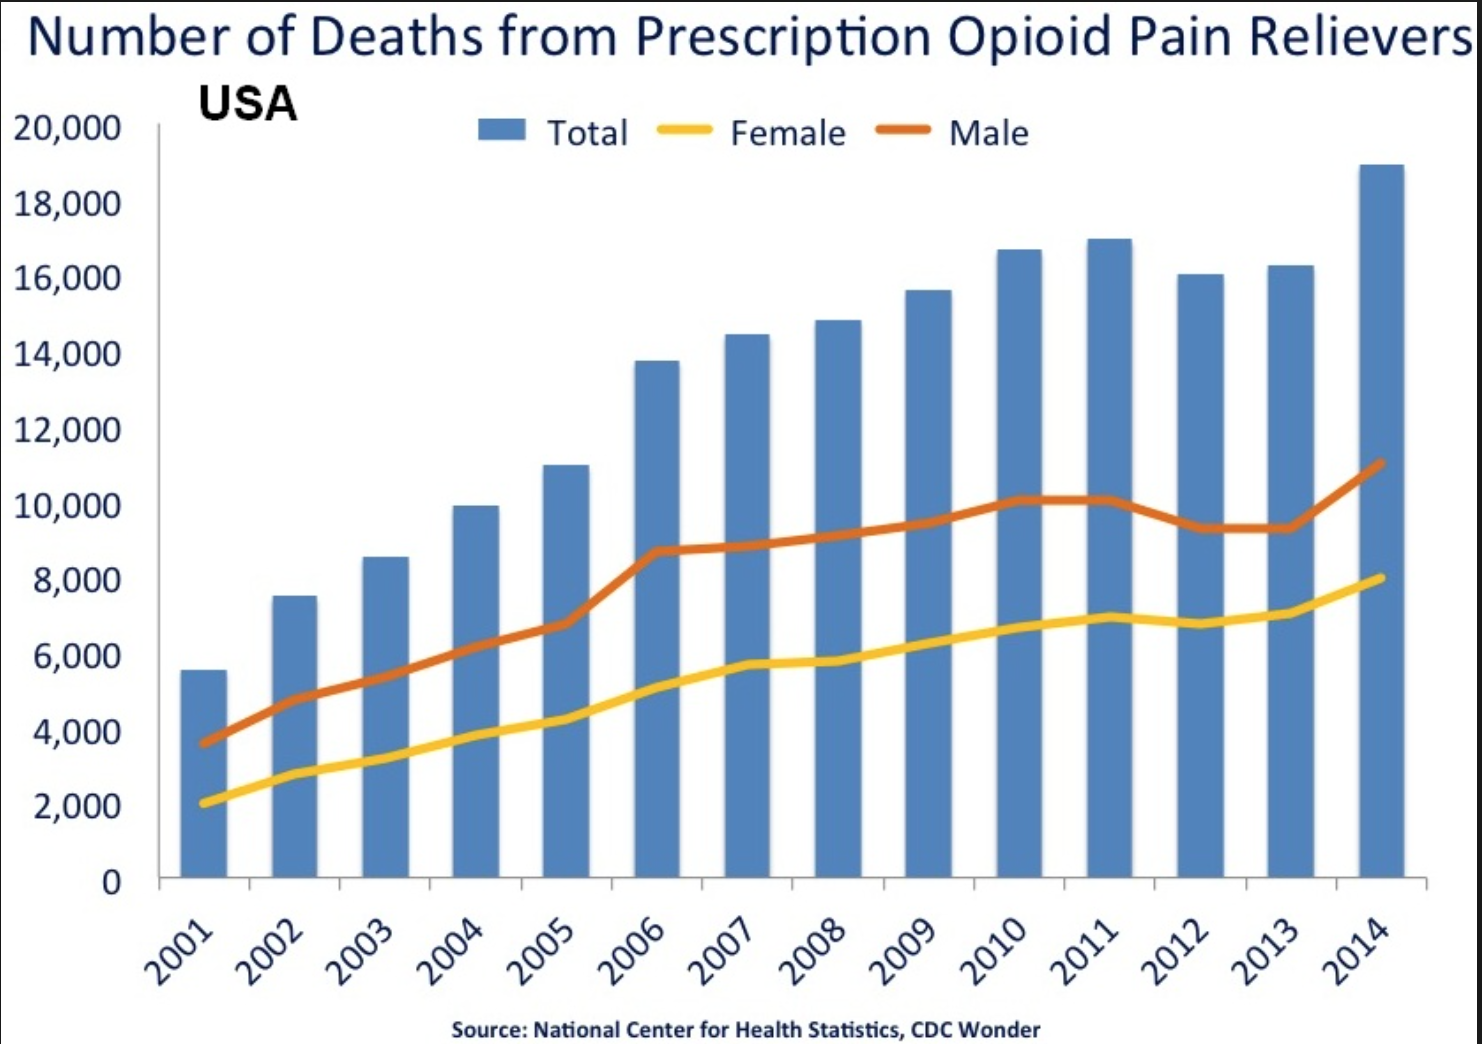 number of deaths from prescription opioid pain relievers through years